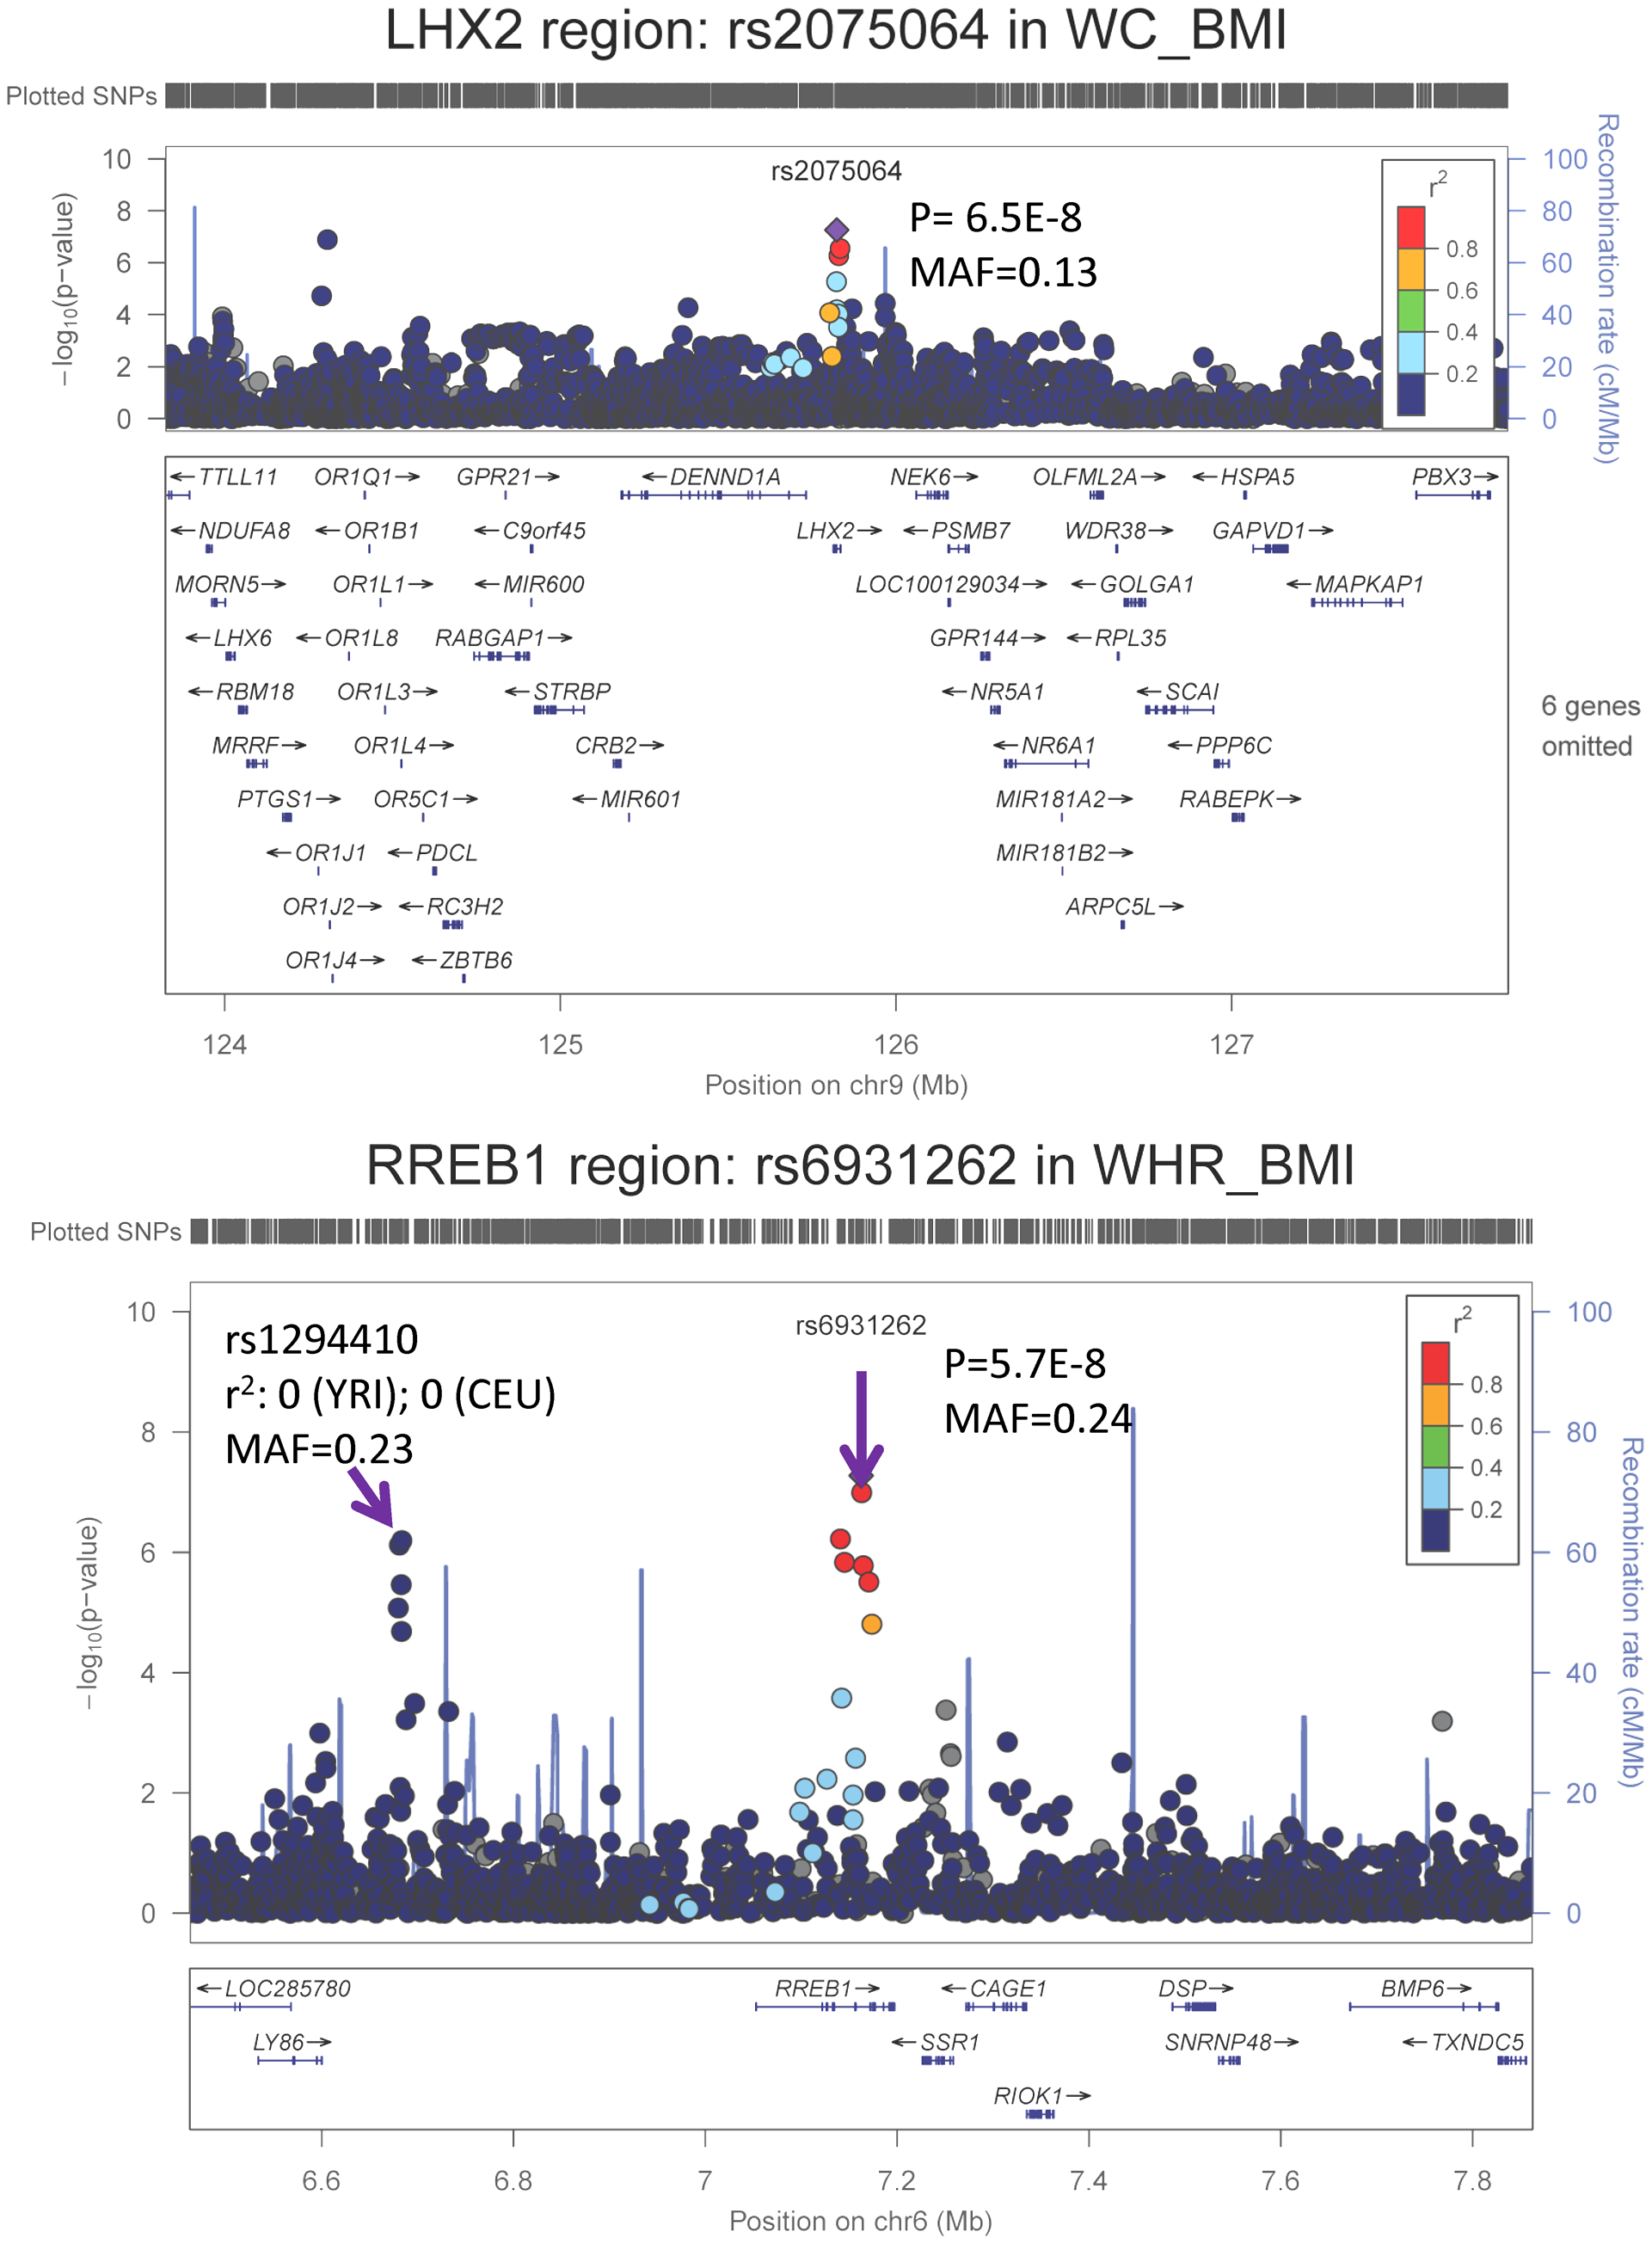 Regional association plots based on single GC-corrected p-value for <i>LHX2</i> and <i>RREB1</i>, Stage 1 only.